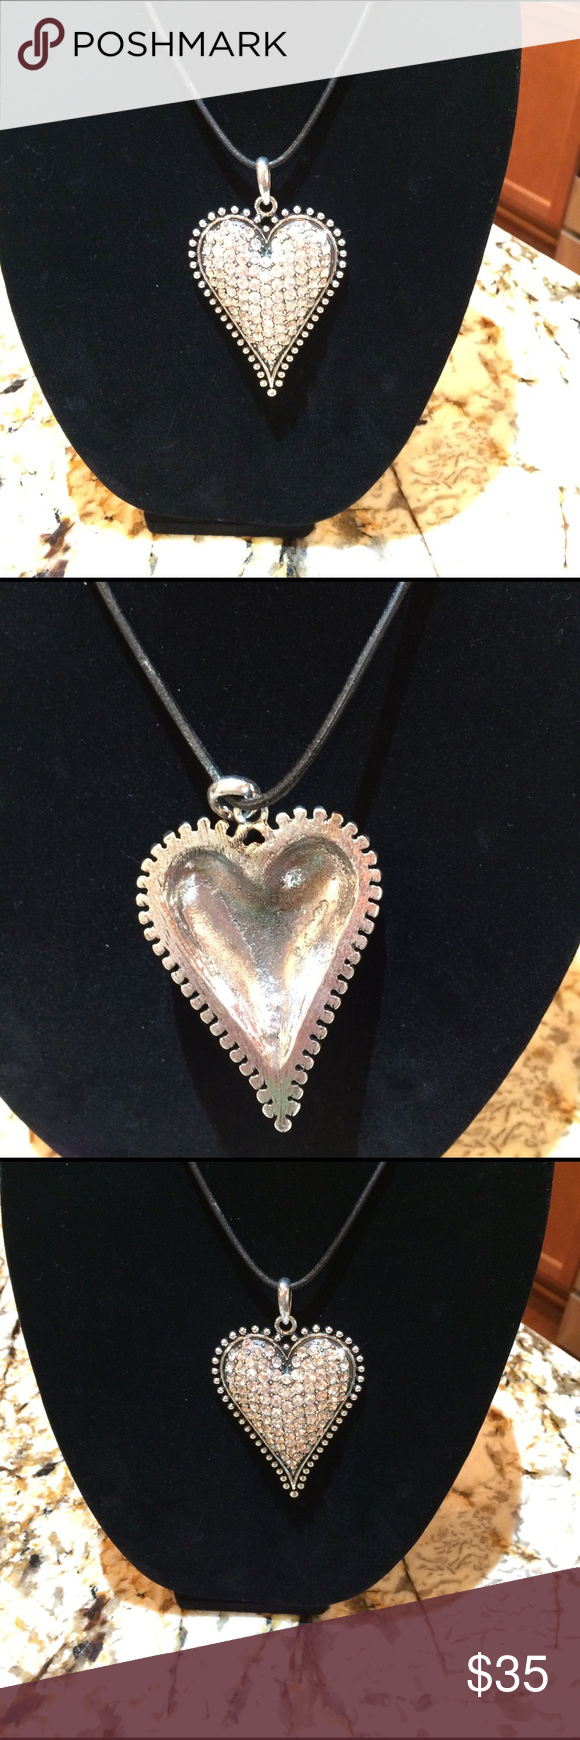 Large, gorgeous heart w/ shiny crystals. New Gorgeous, large ...